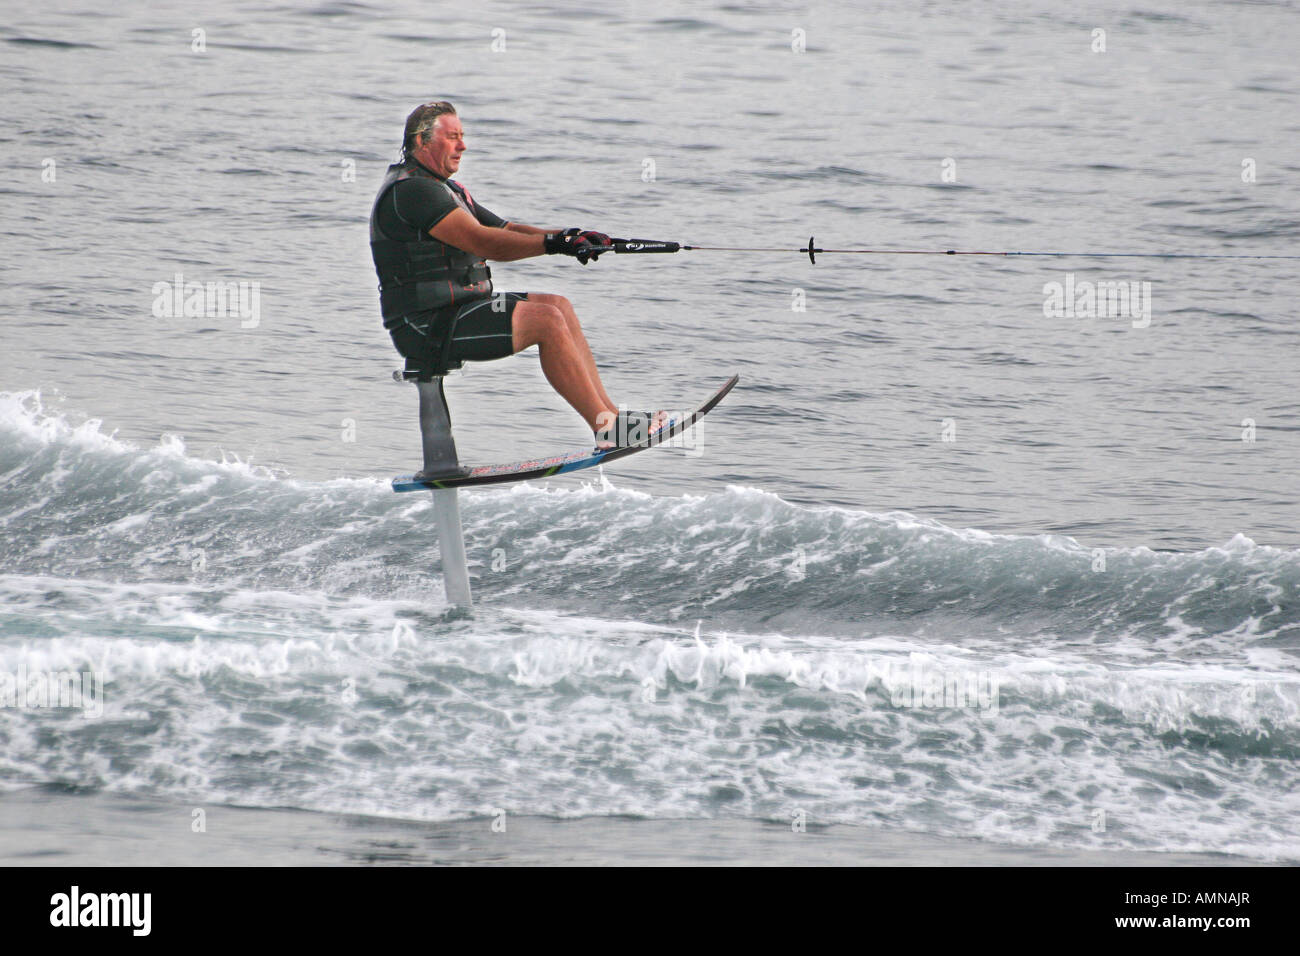 Man on water ski chair being pulled at high speed by motor launch – Waterski Chair